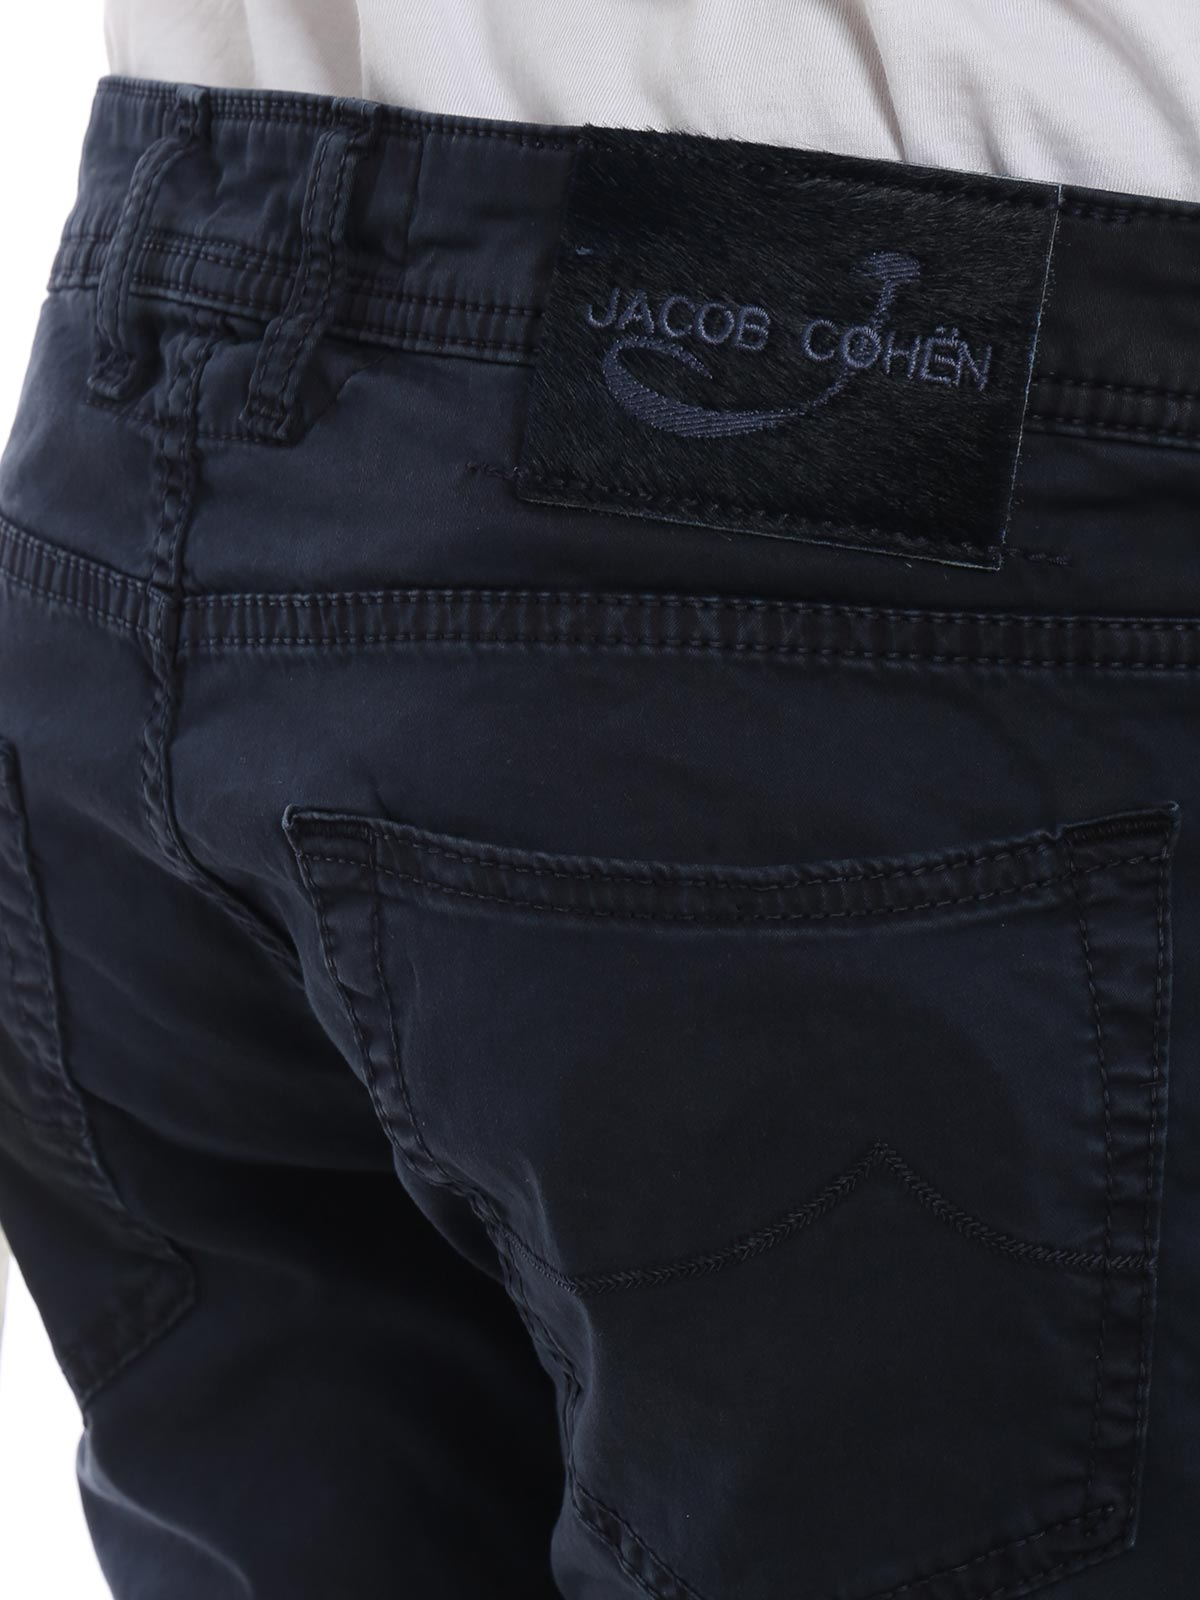 Picture of JACOB COHEN | Men's Stretch Cotton Trousers